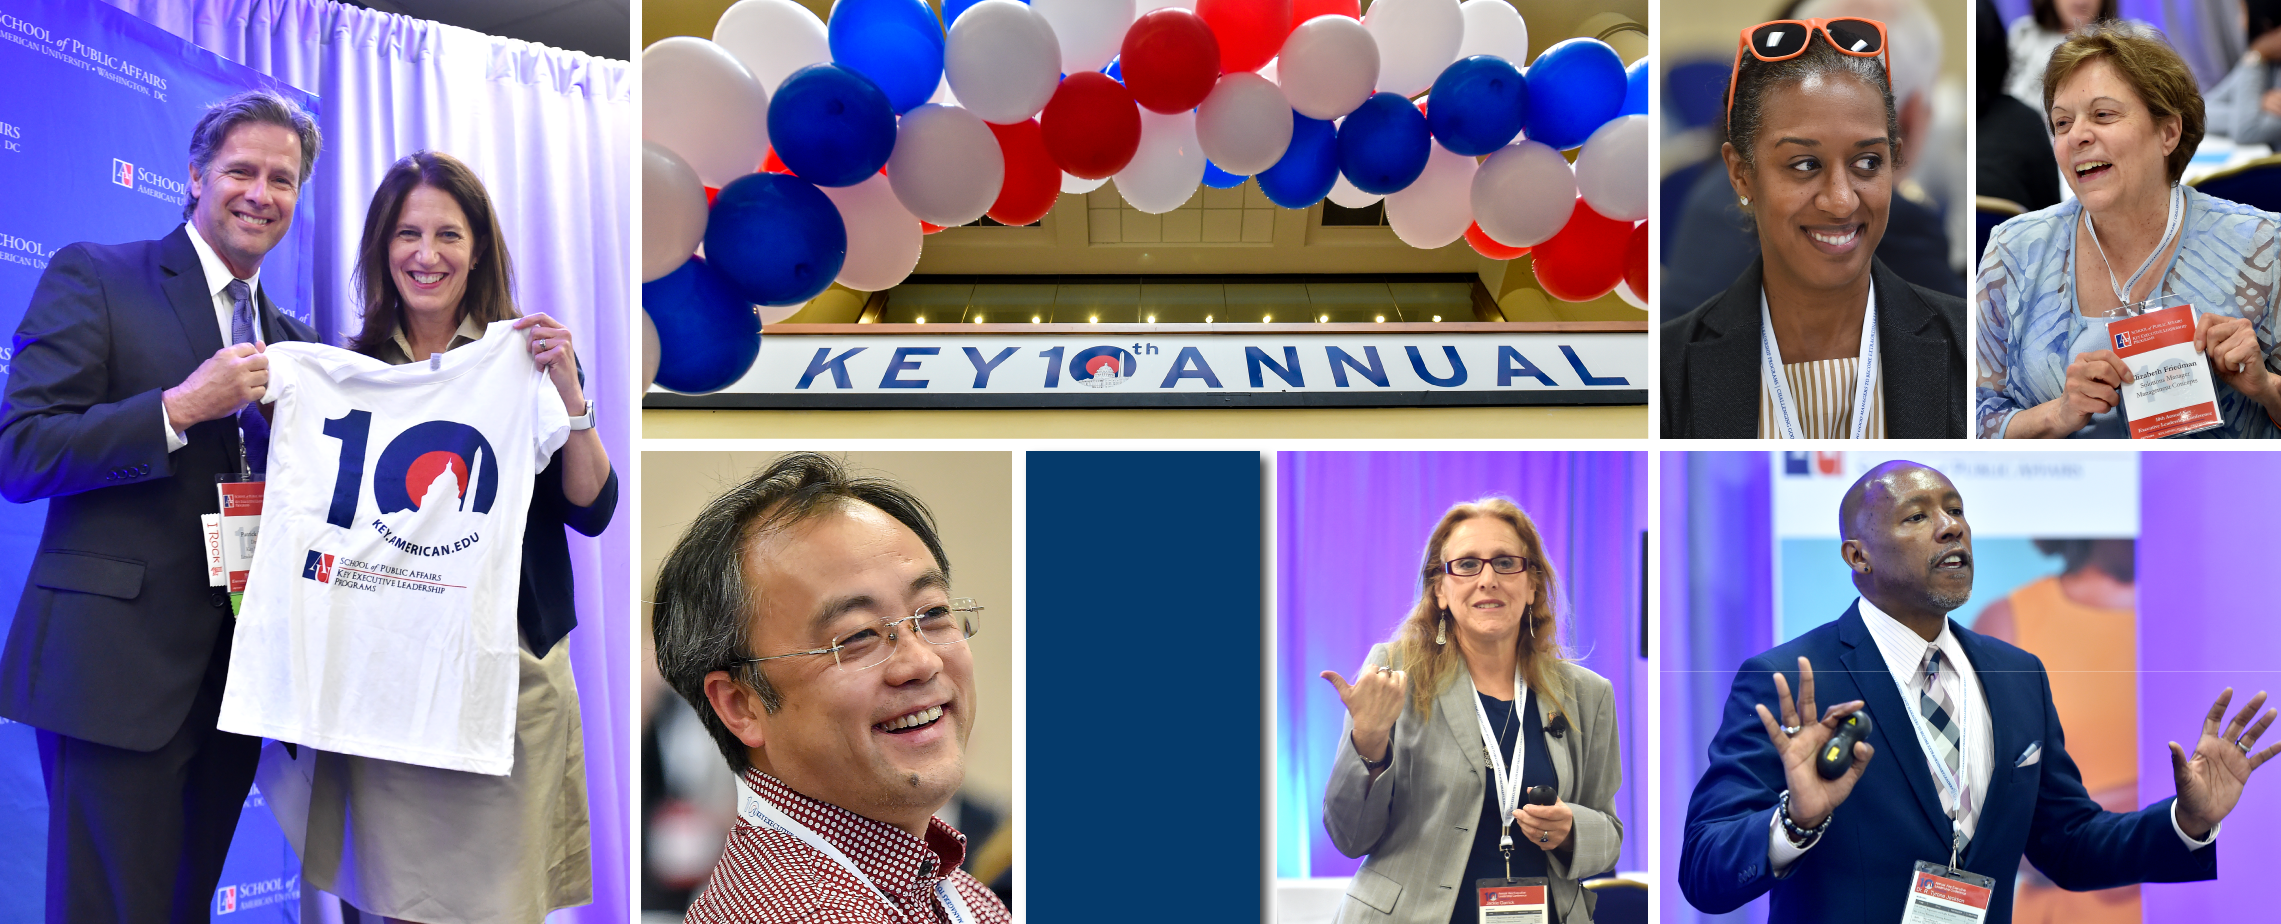 Collage from the 10th Annual Key Executive Leadership Conference